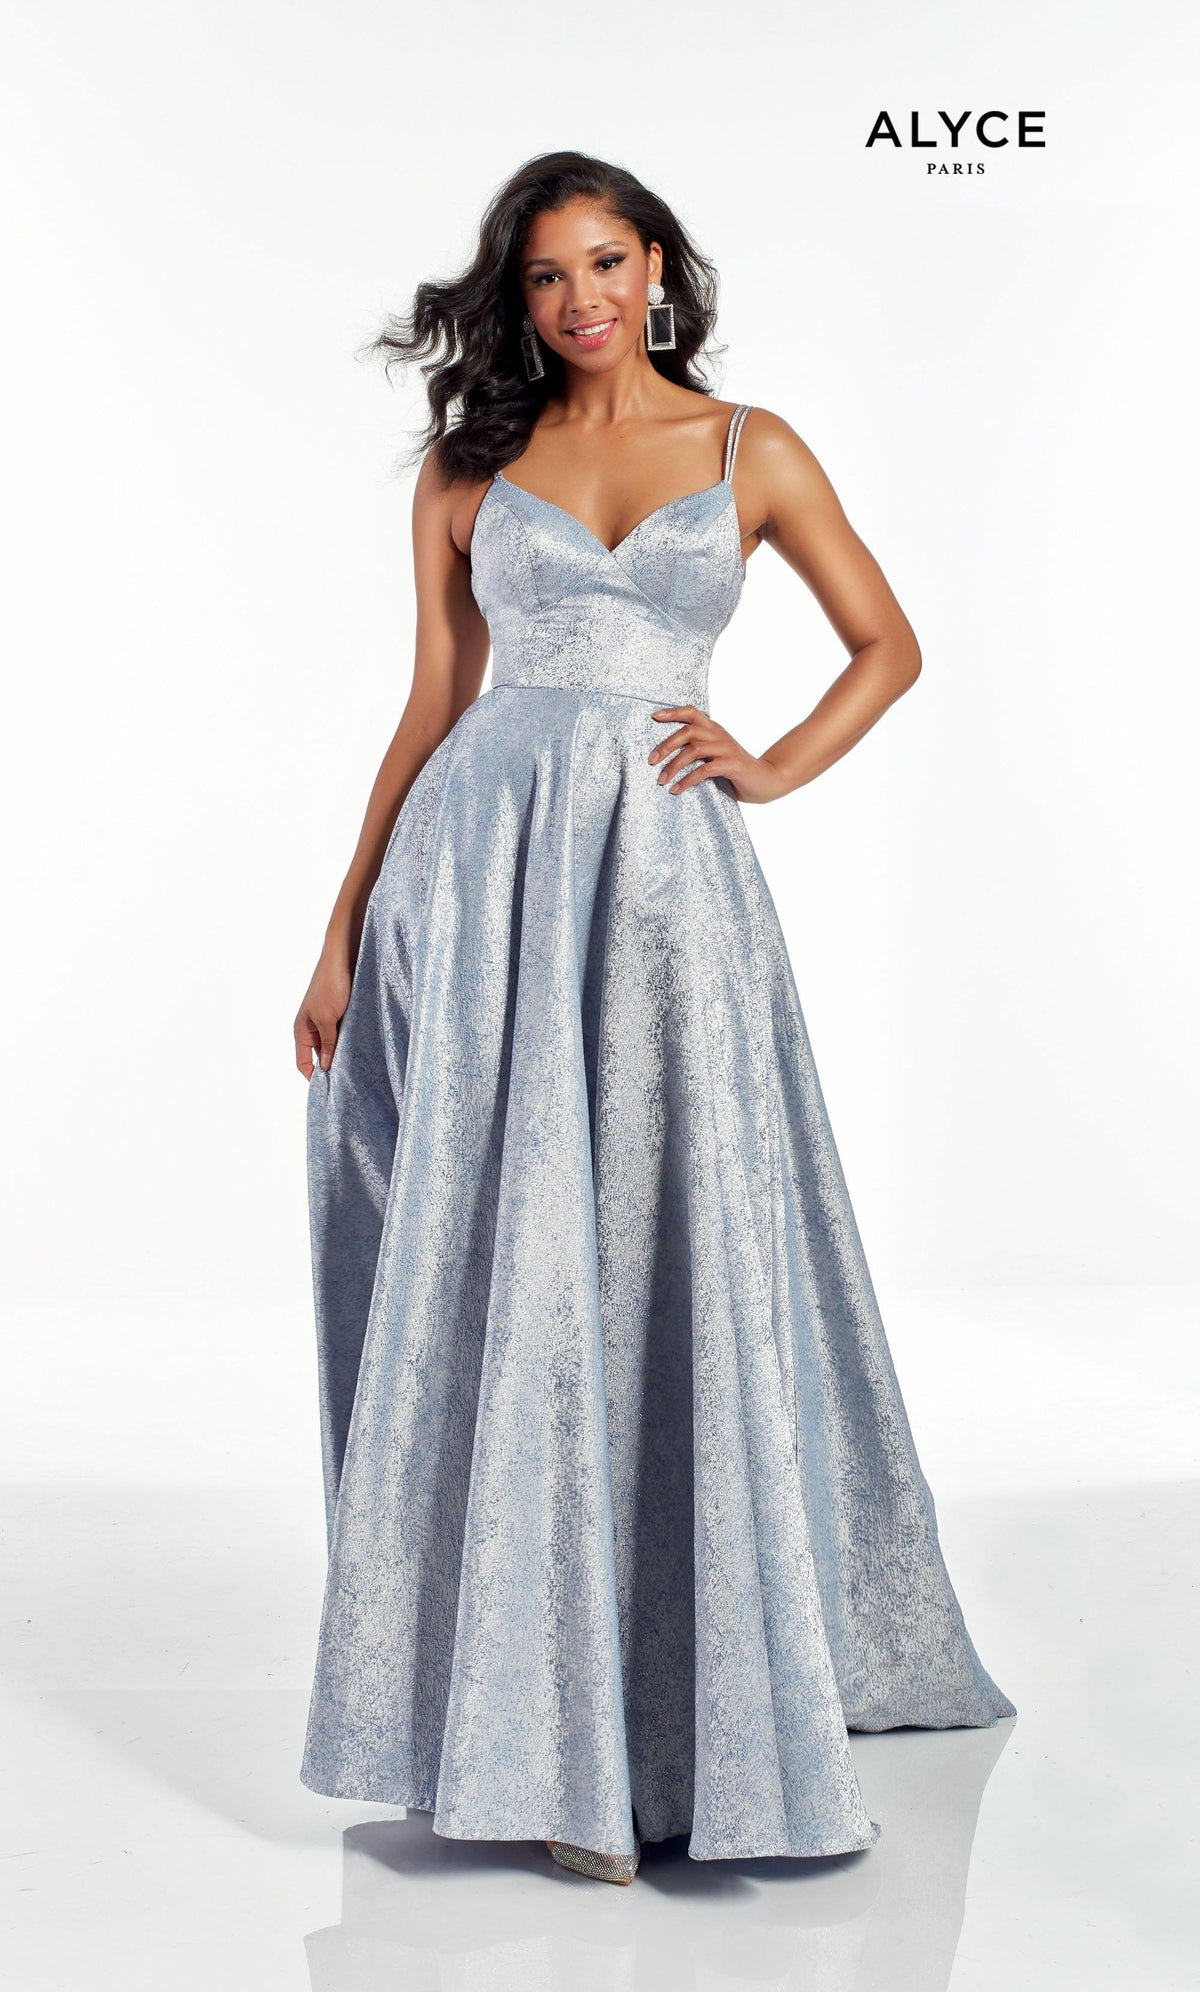 Light Blue metallic jacquard formal dress with a V shaped neckline